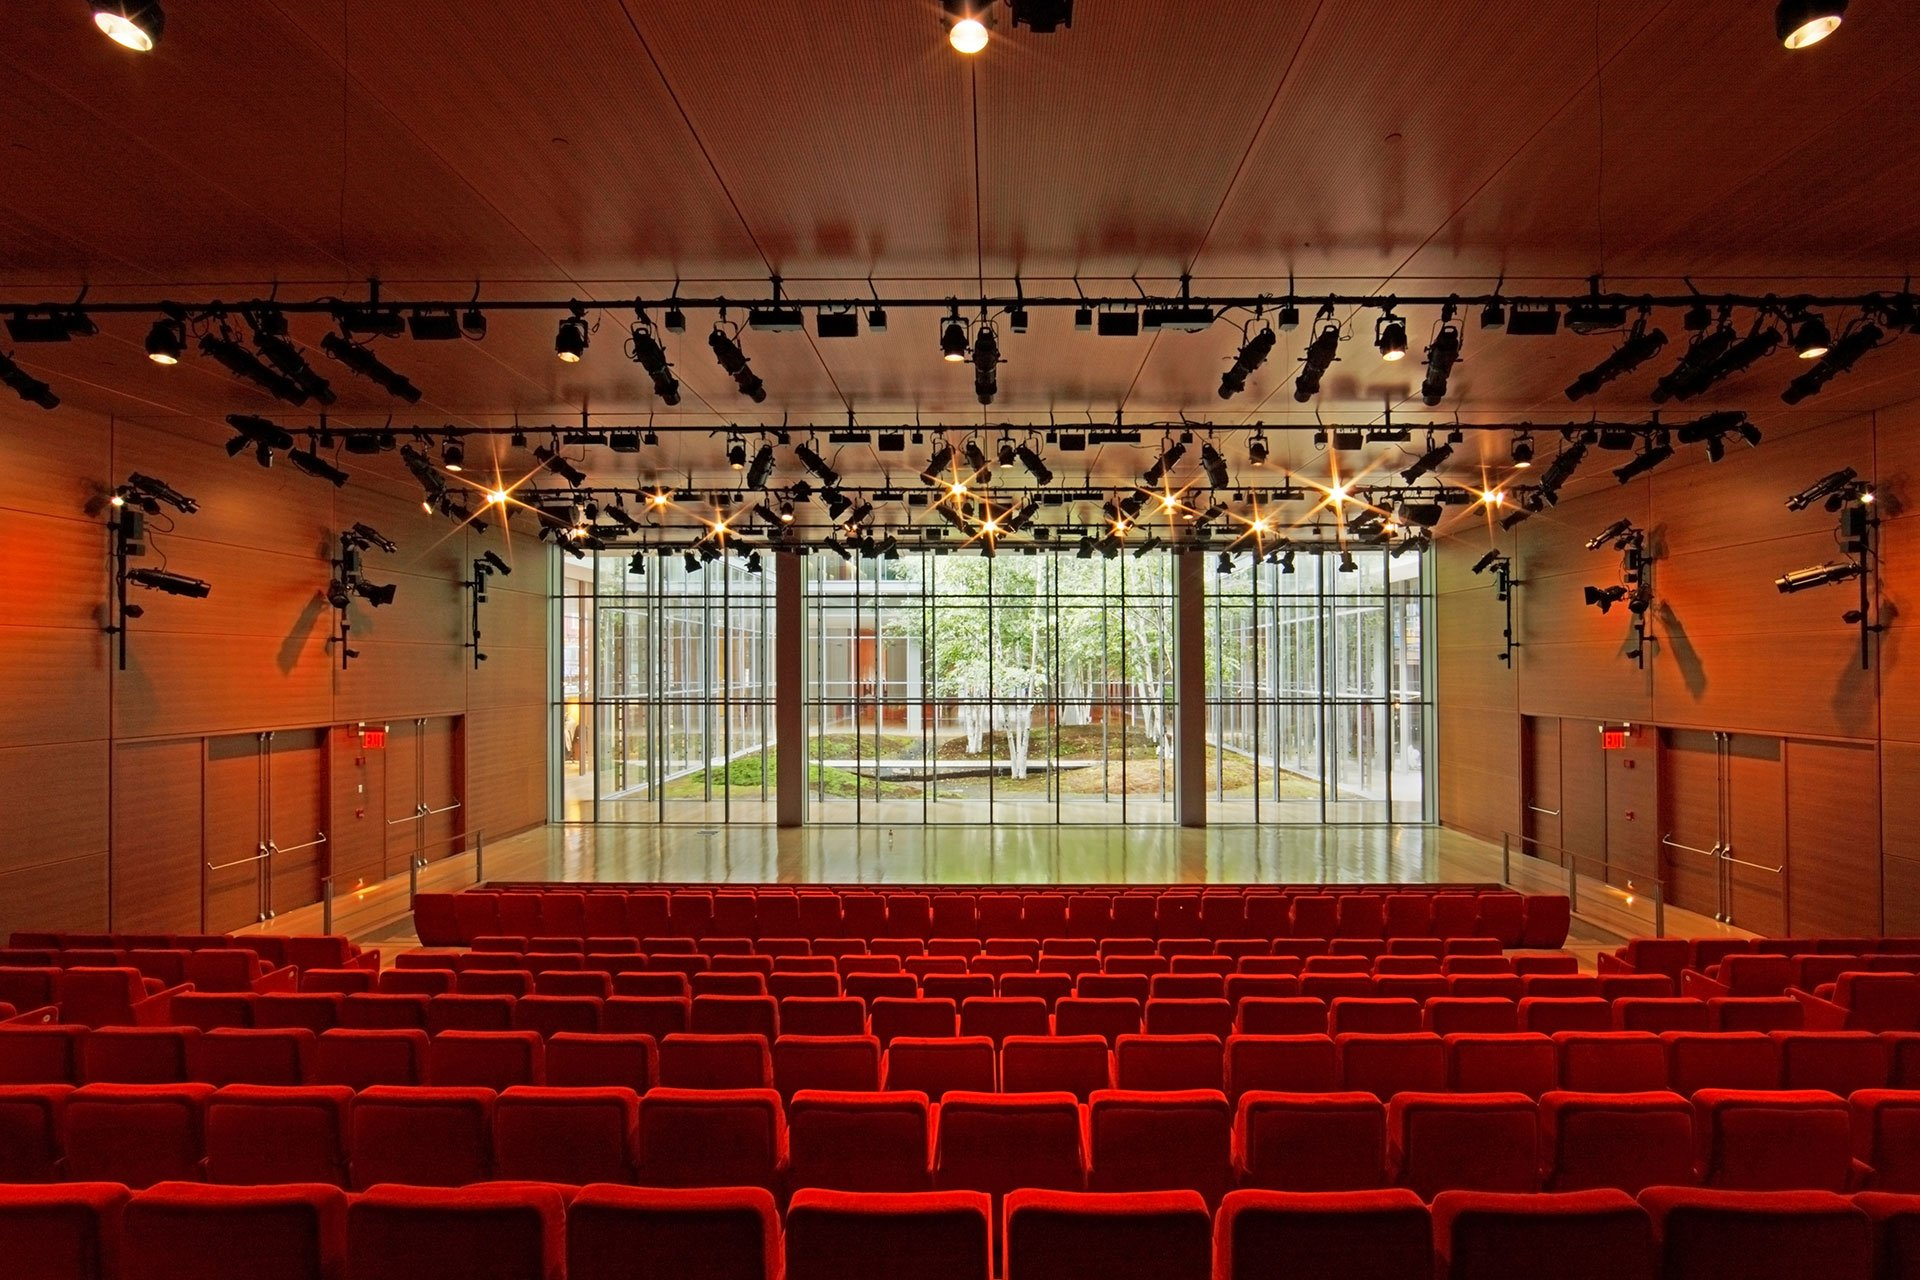 New York Time auditorium lighting OVI architectural lighting design